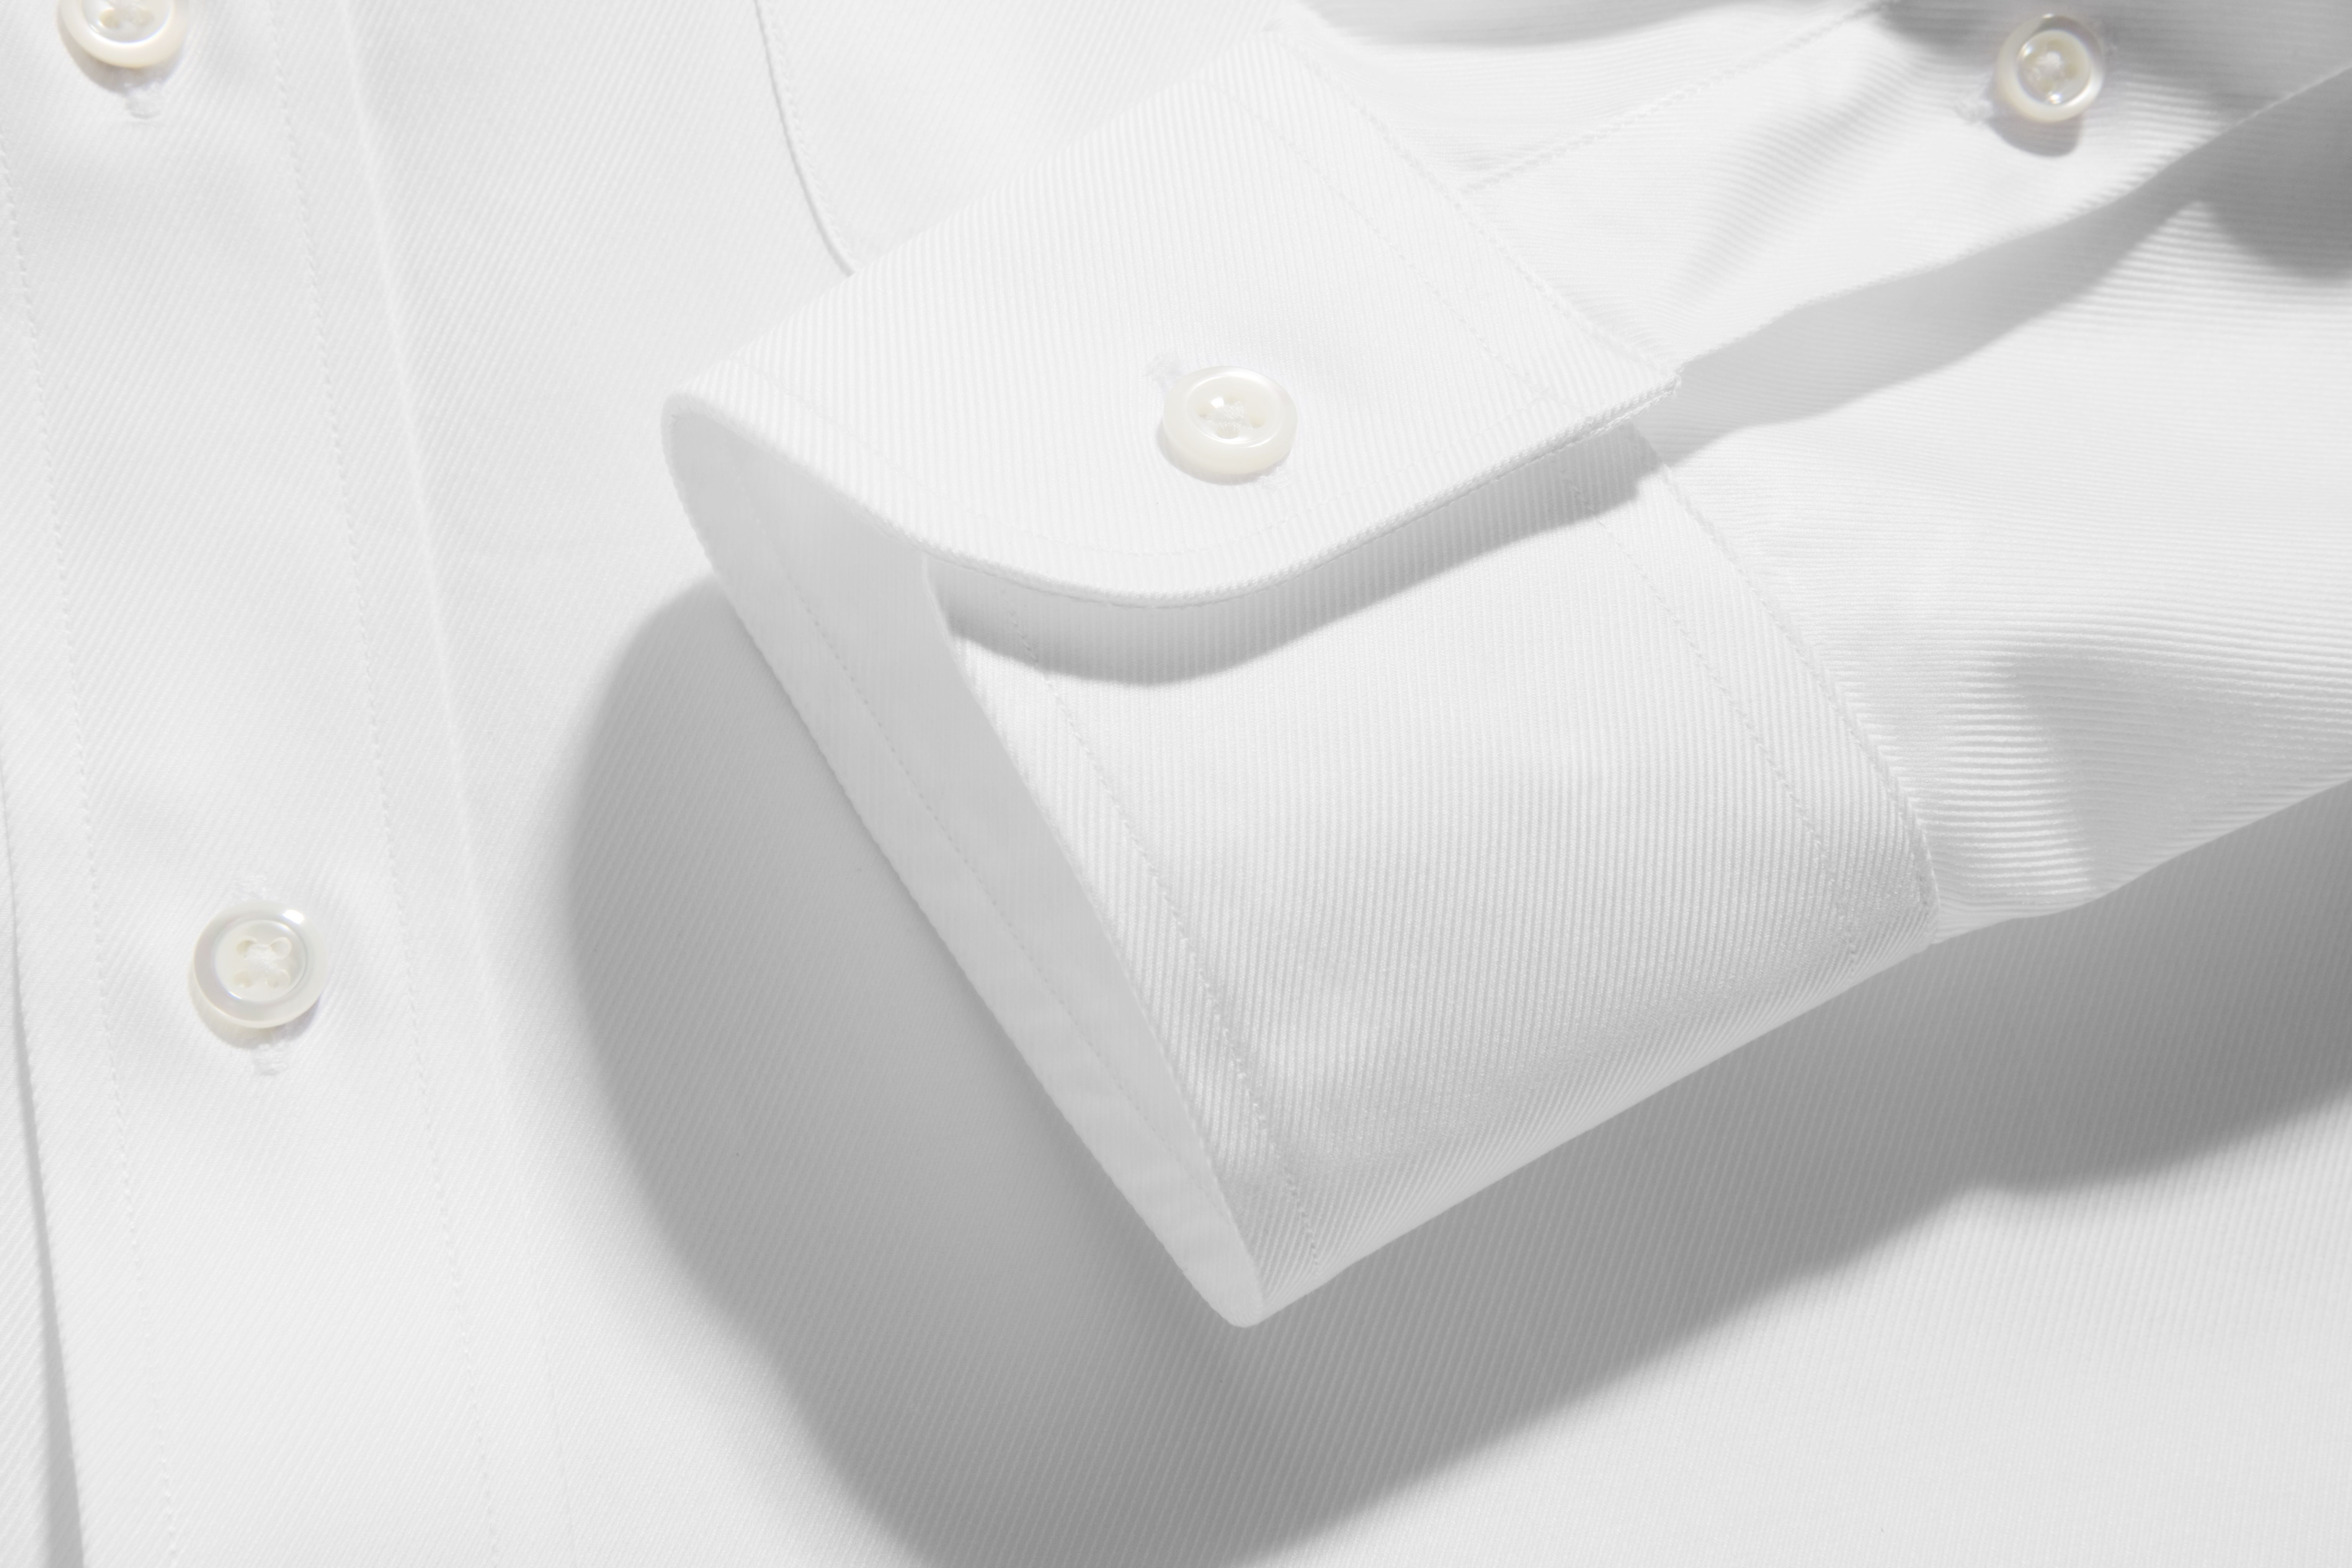 How To Starch Shirts Like The Laundry At Home